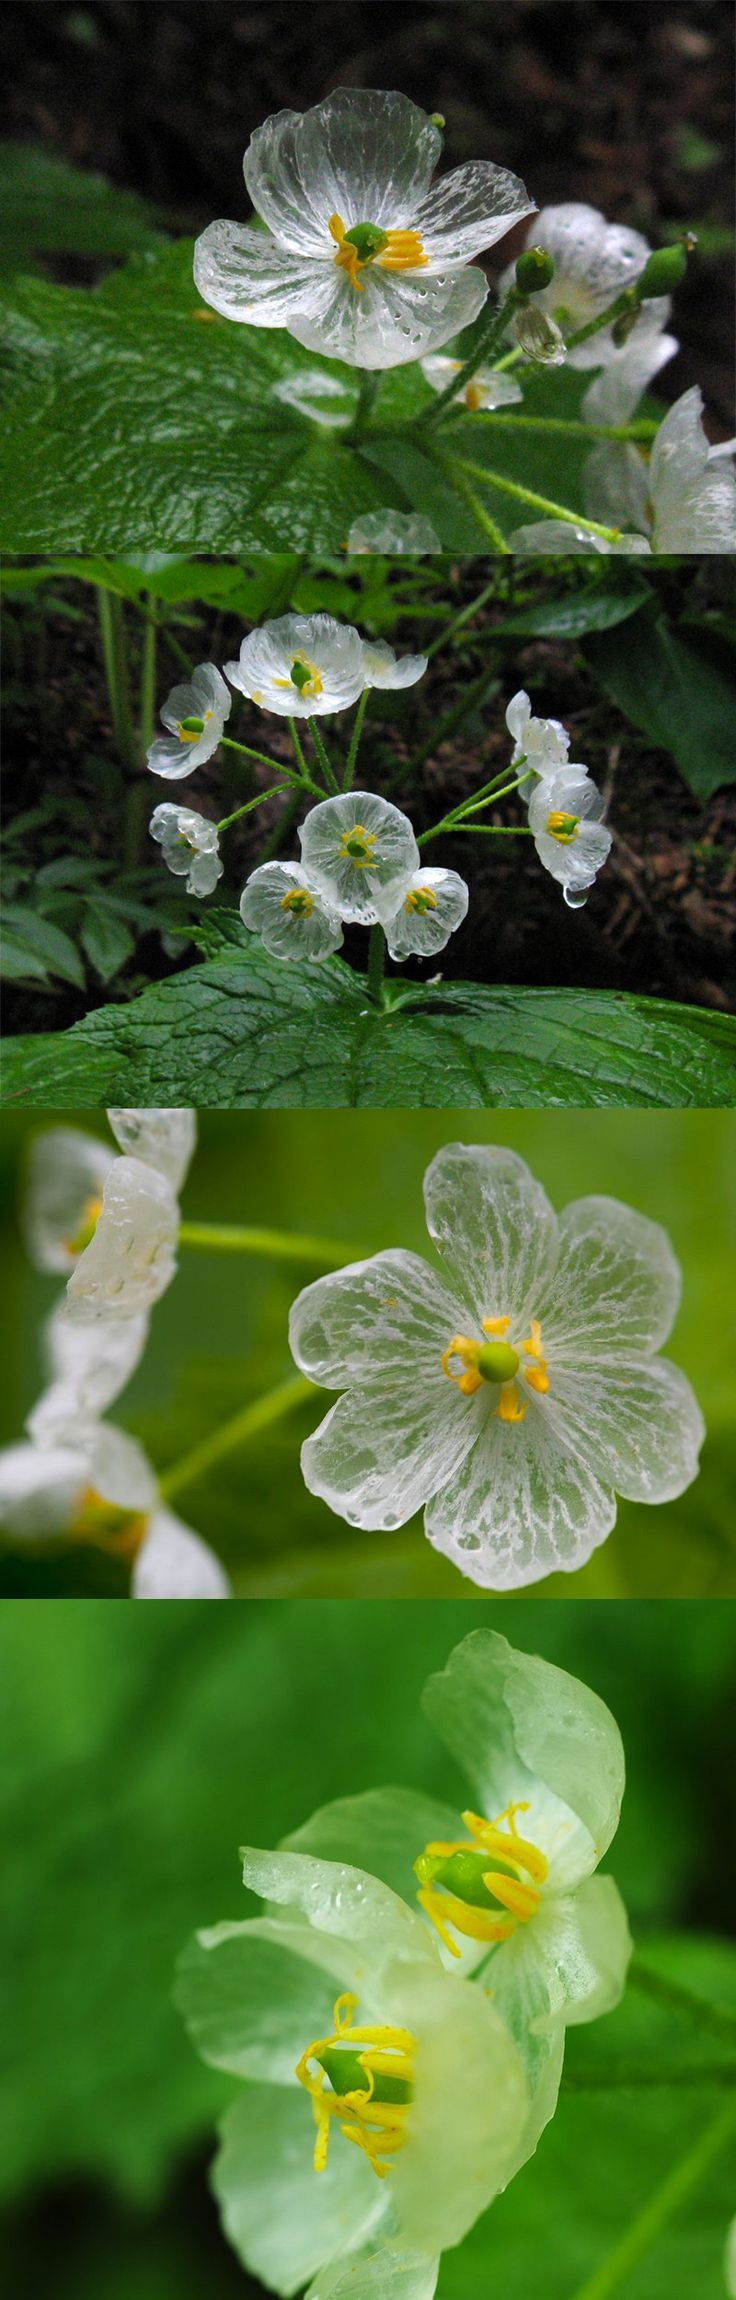 The skeleton flower turns from white to translucent when exposed the skeleton flower turns from white to translucent when exposed to water mightylinksfo